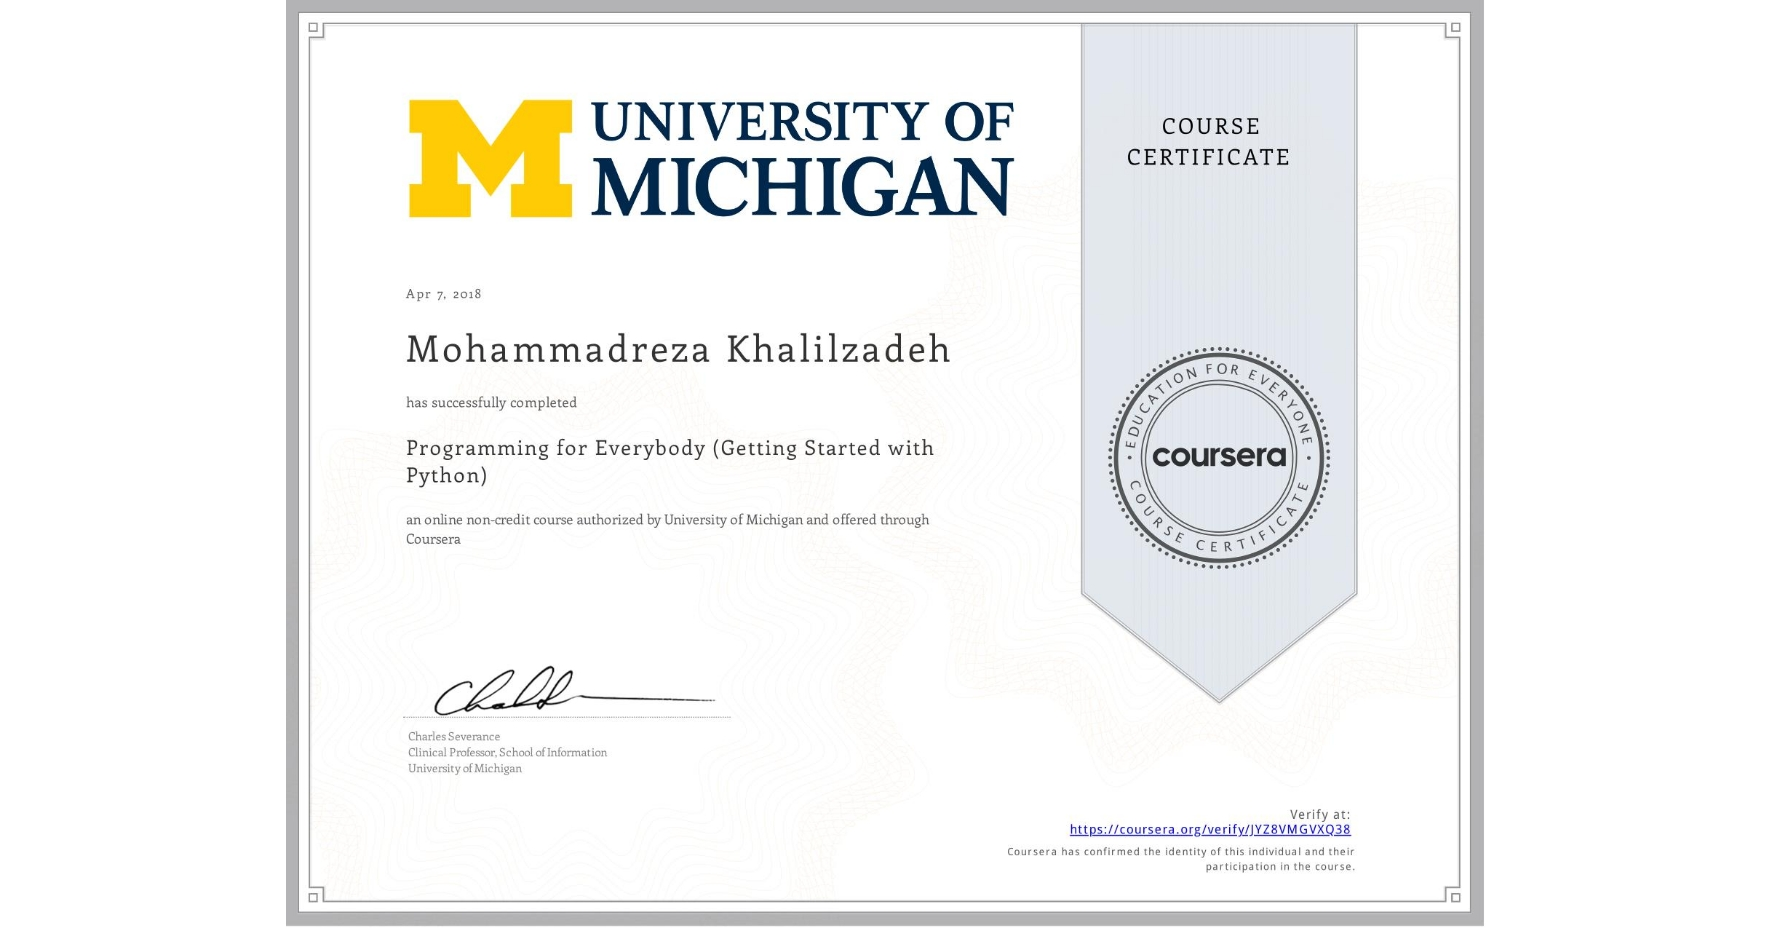 View certificate for Mohammadreza Khalilzadeh, Programming for Everybody (Getting Started with Python), an online non-credit course authorized by University of Michigan and offered through Coursera